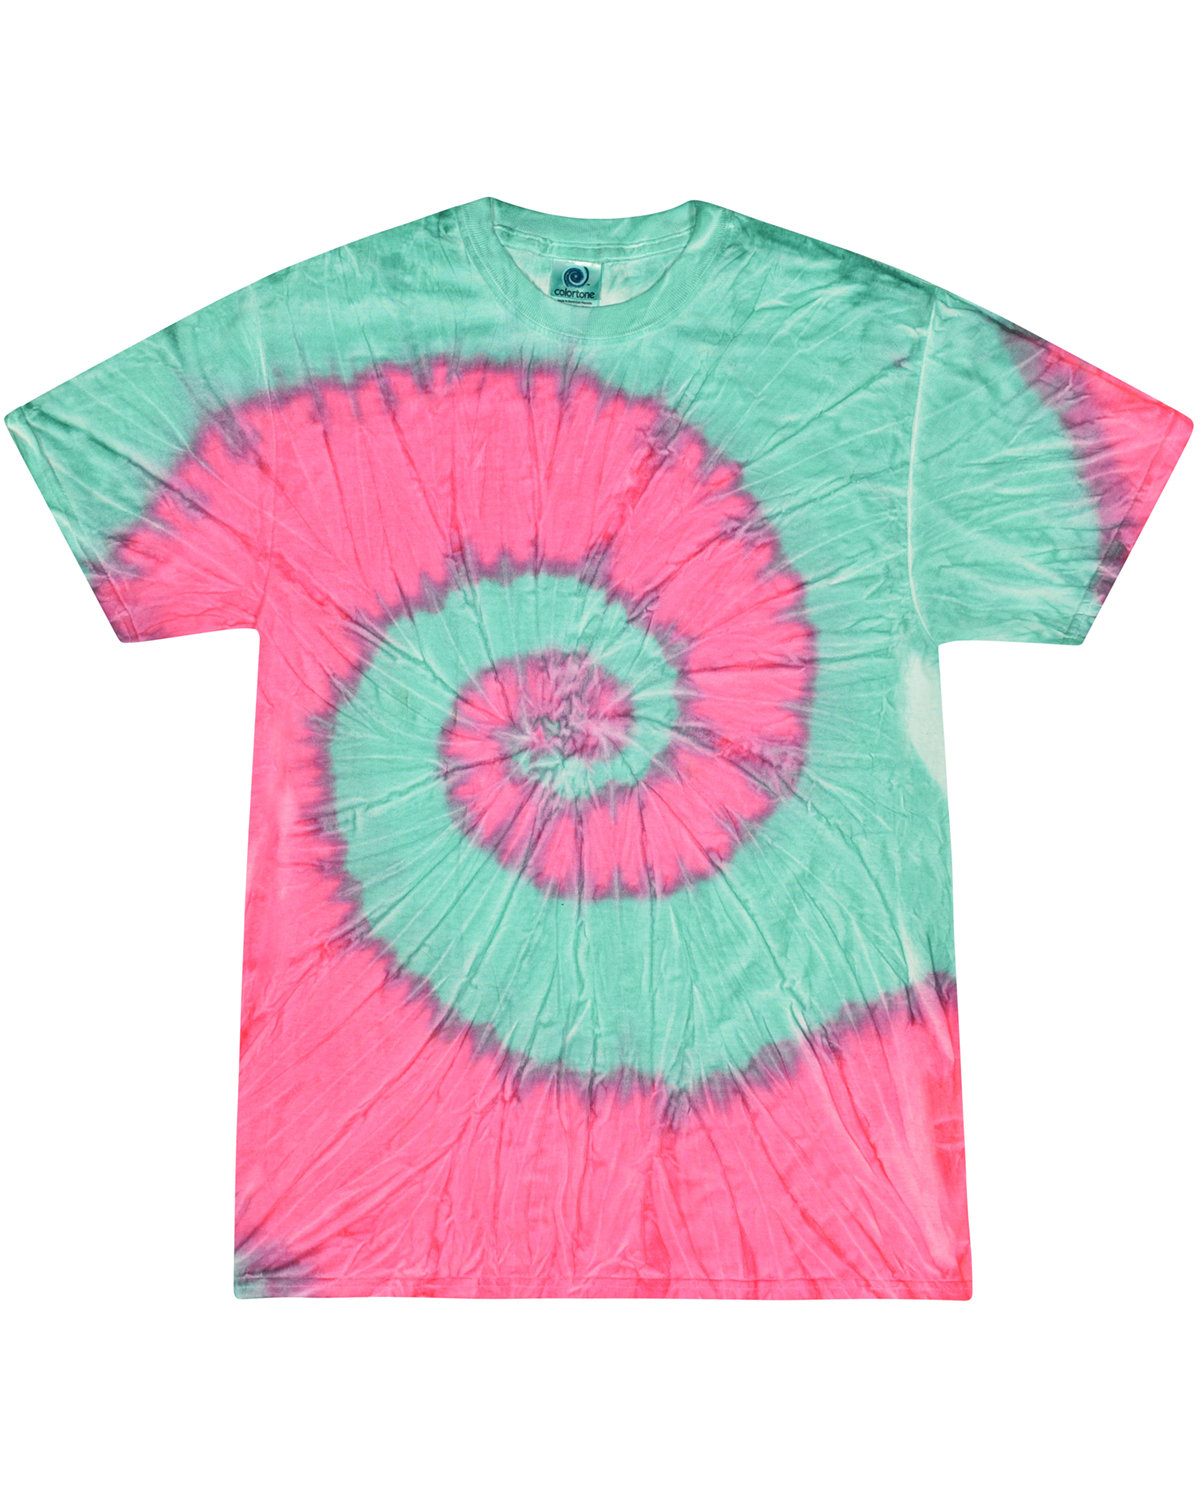 Tie-Dye Adult 5.4 oz., 100% Cotton T-Shirt MINT FUSION